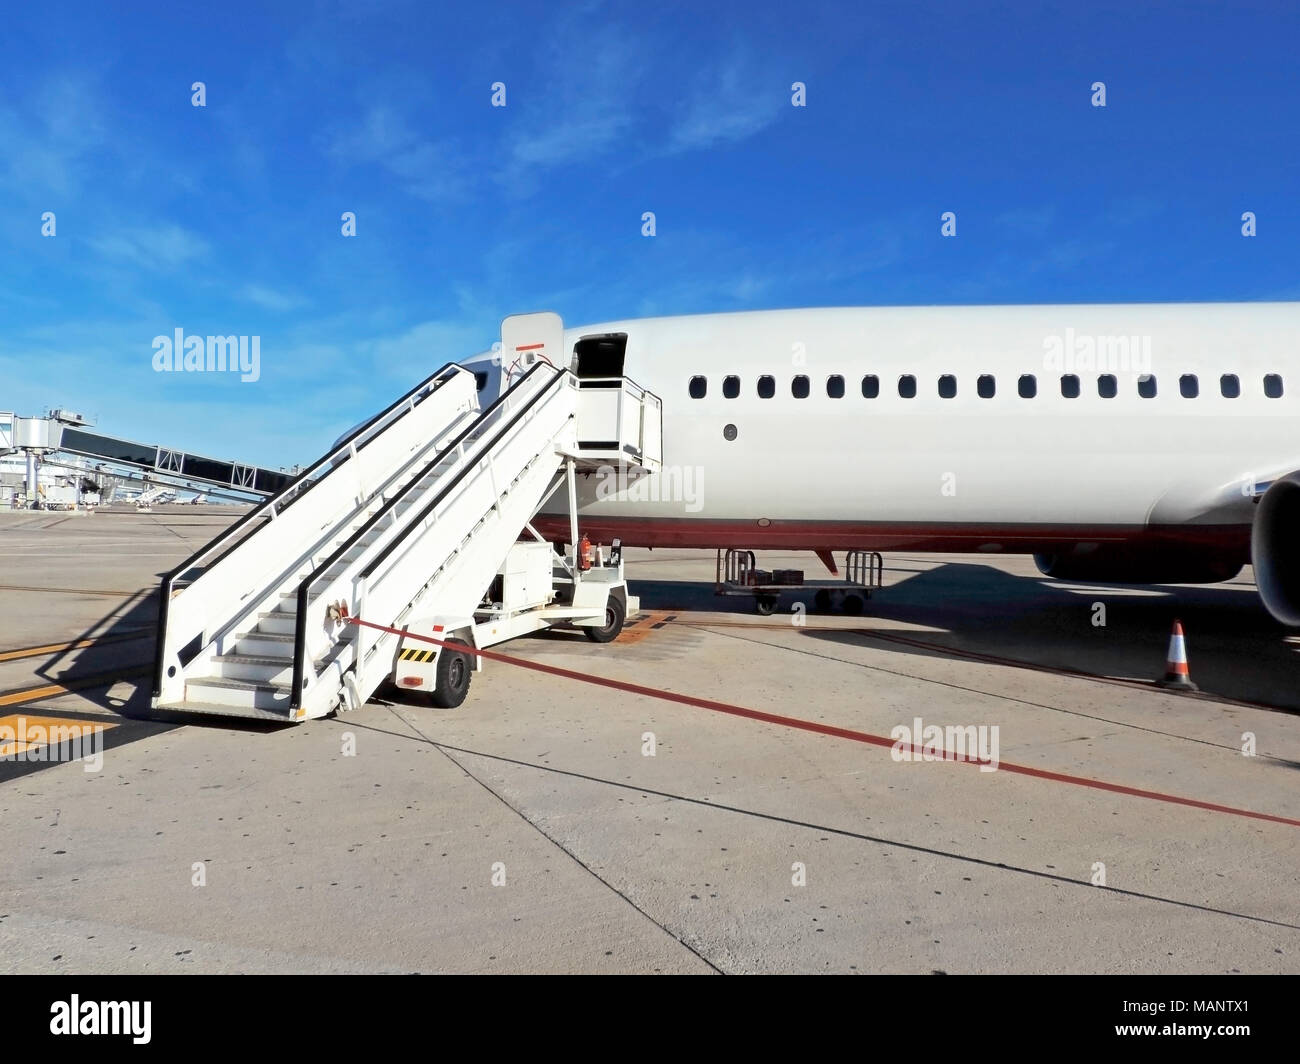 Airplane Steps Stock Photos & Airplane Steps Stock Images